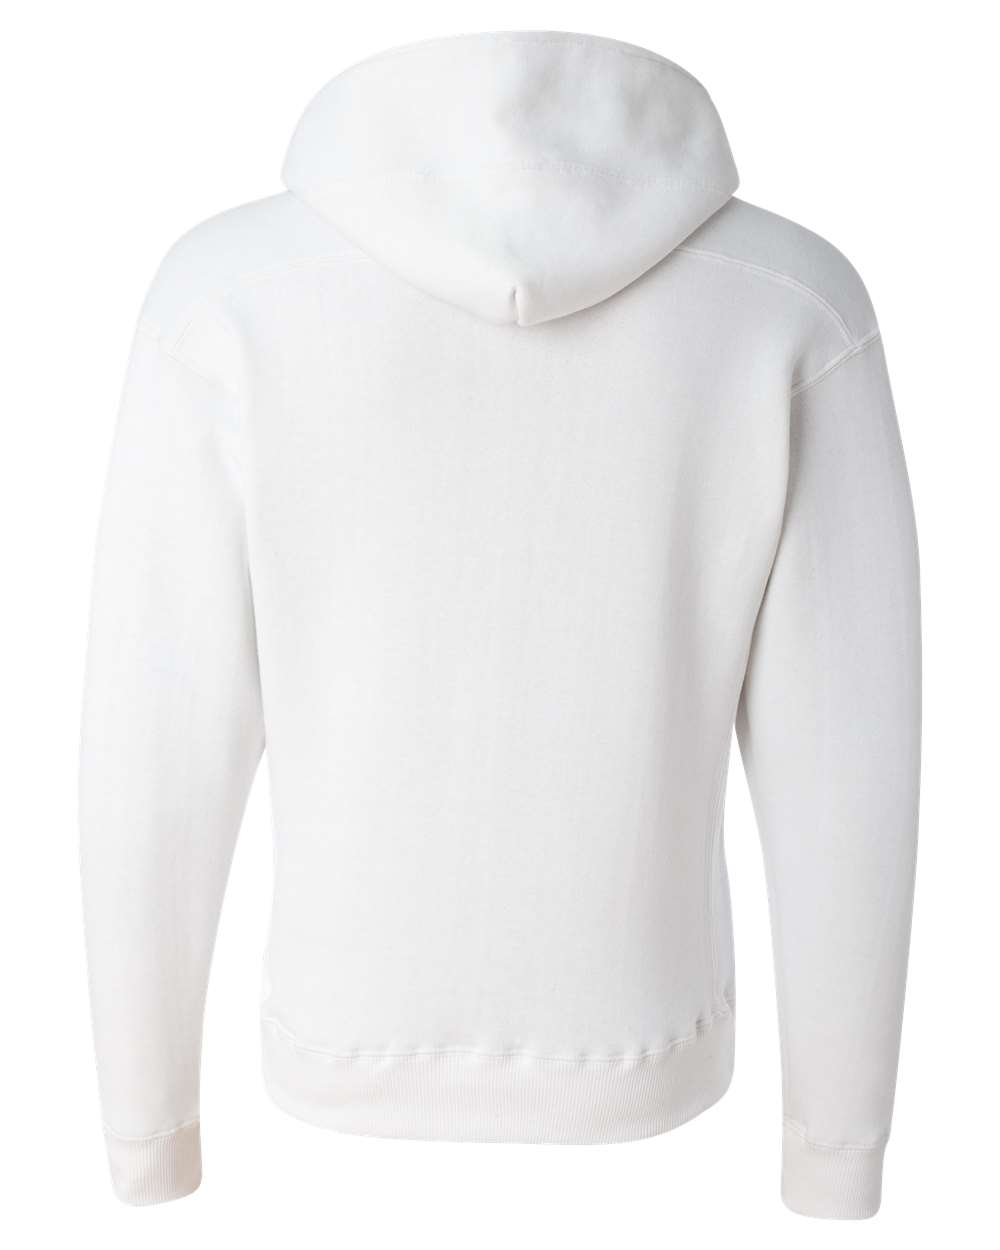 J-America-Mens-Blank-Sport-Lace-Hooded-Sweatshirt-8830-up-to-3XL thumbnail 28